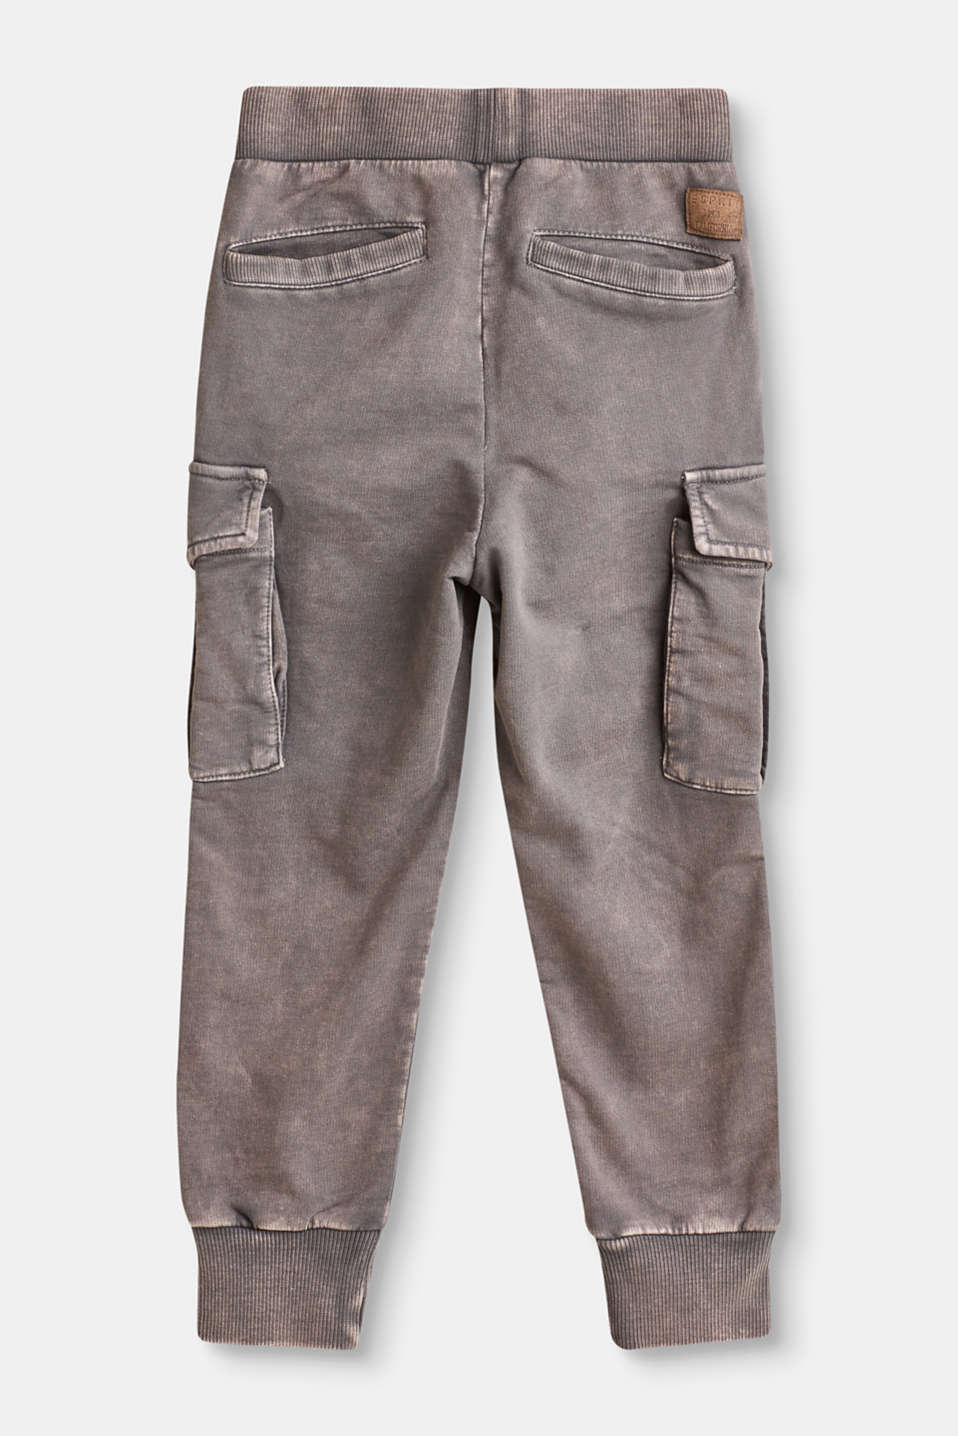 Cargo style tracksuit trousers in 100% cotton